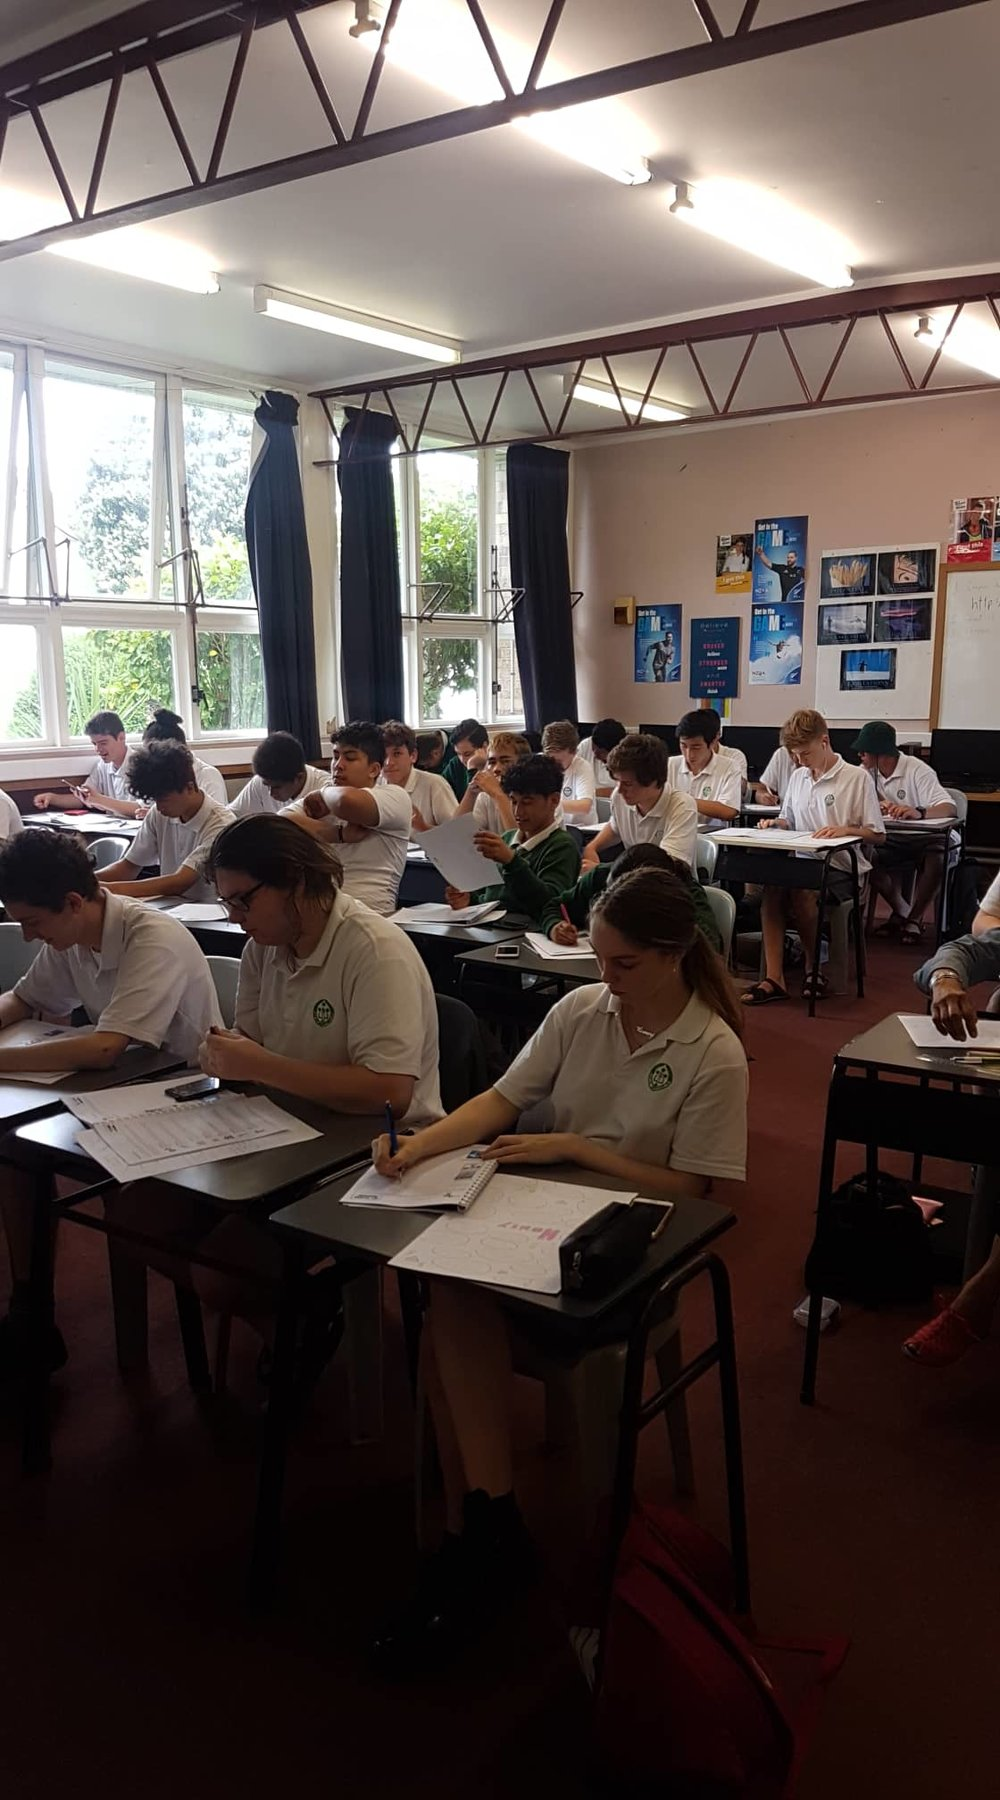 Image taken at a Whanganui High School workshop - GET Started Level 1 -